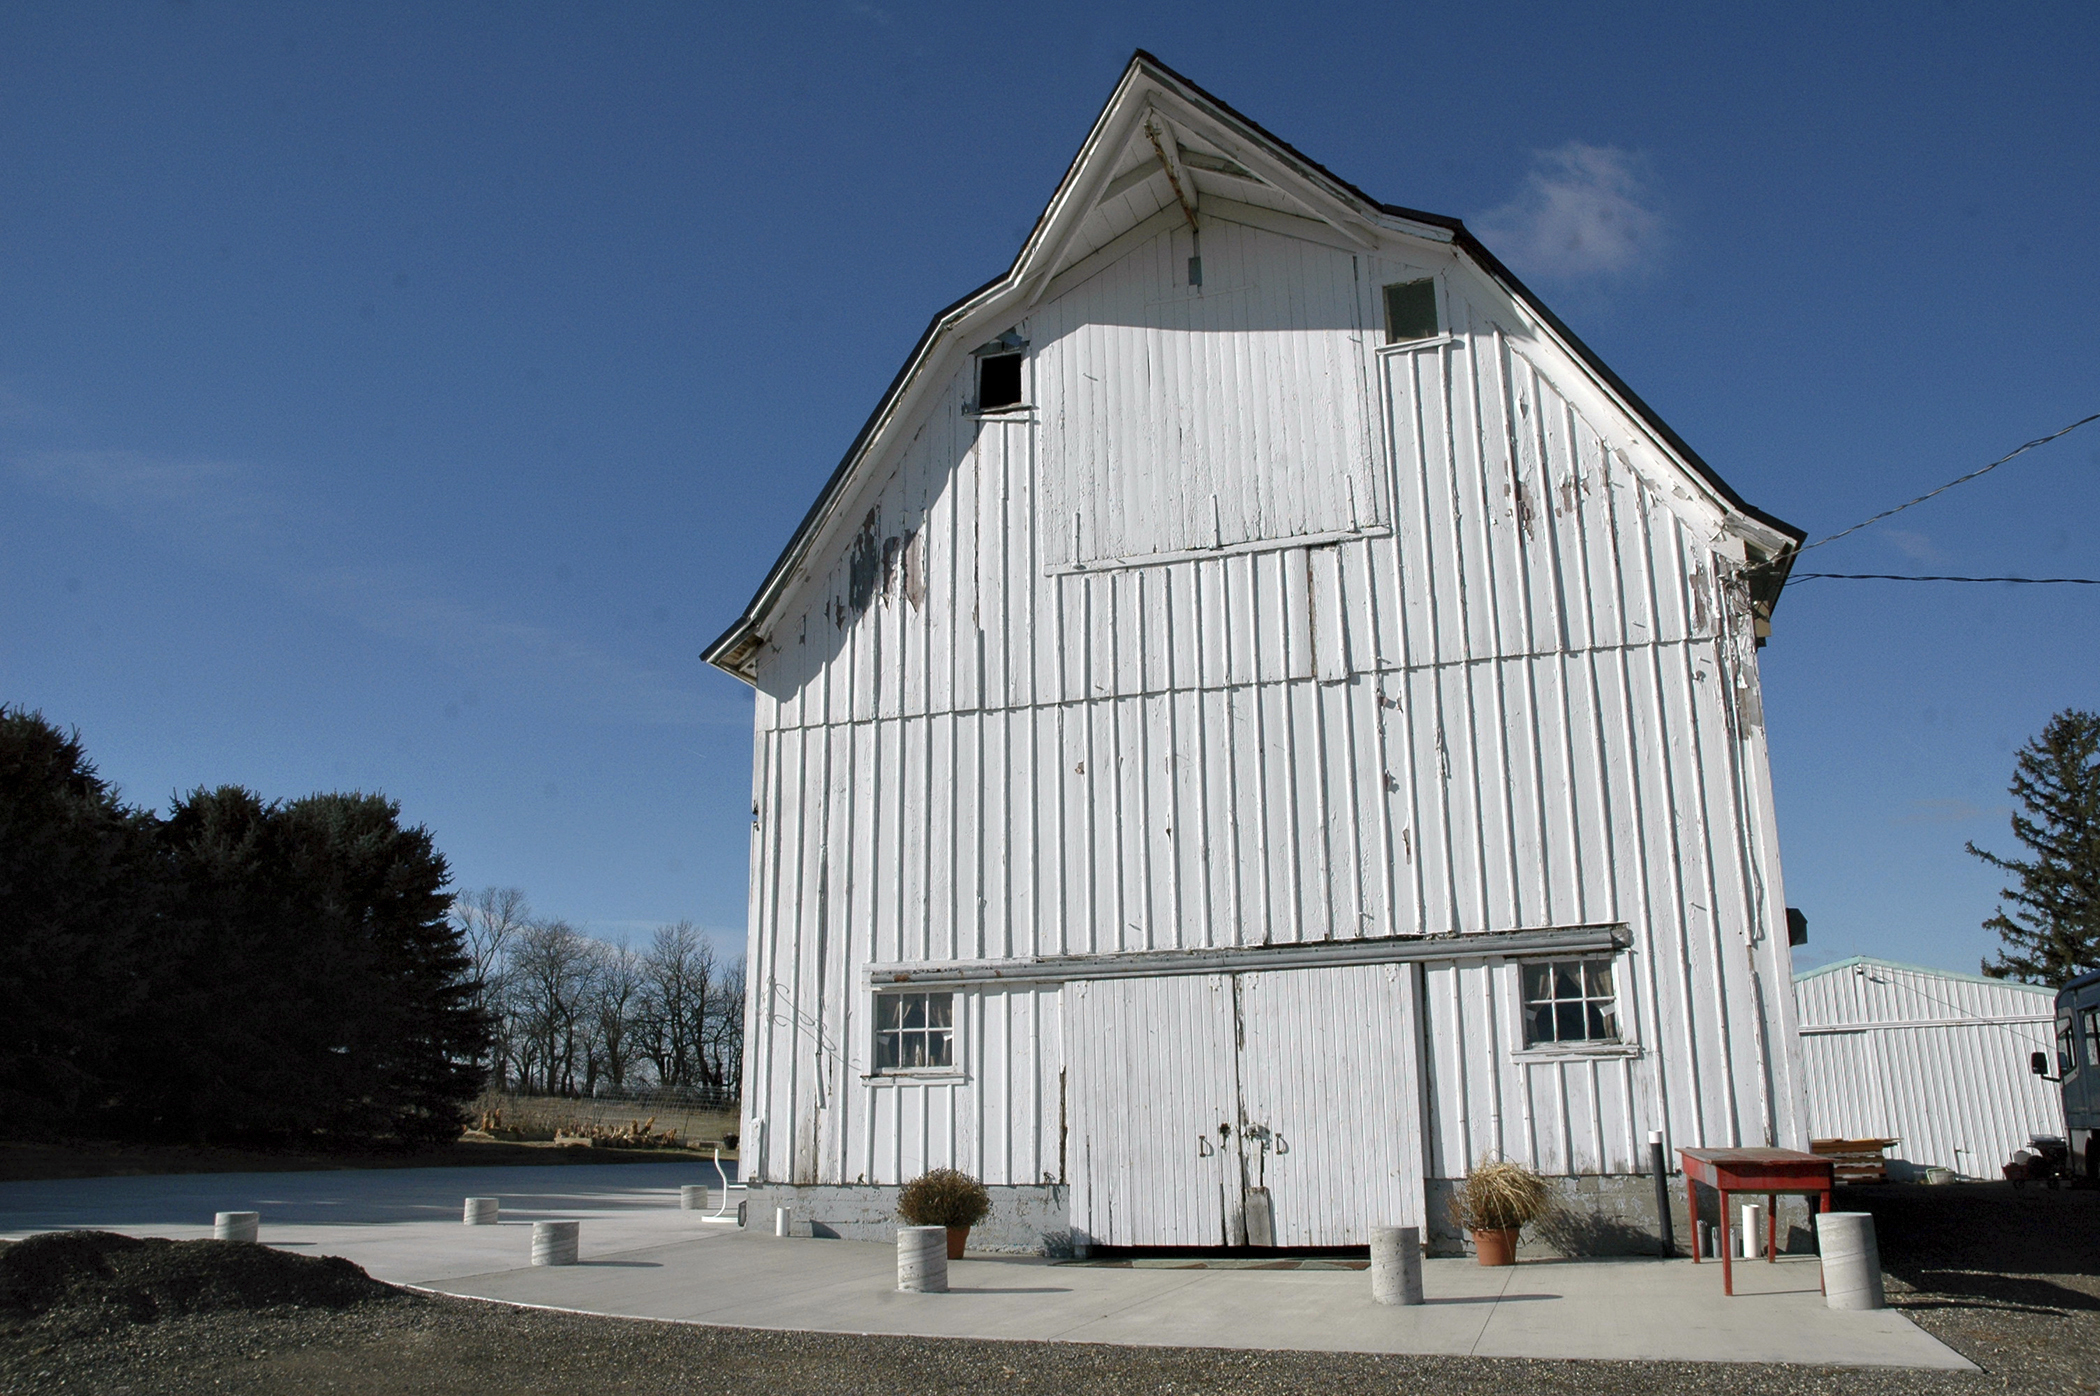 Couple Converts Barn To A Venue For Weddings